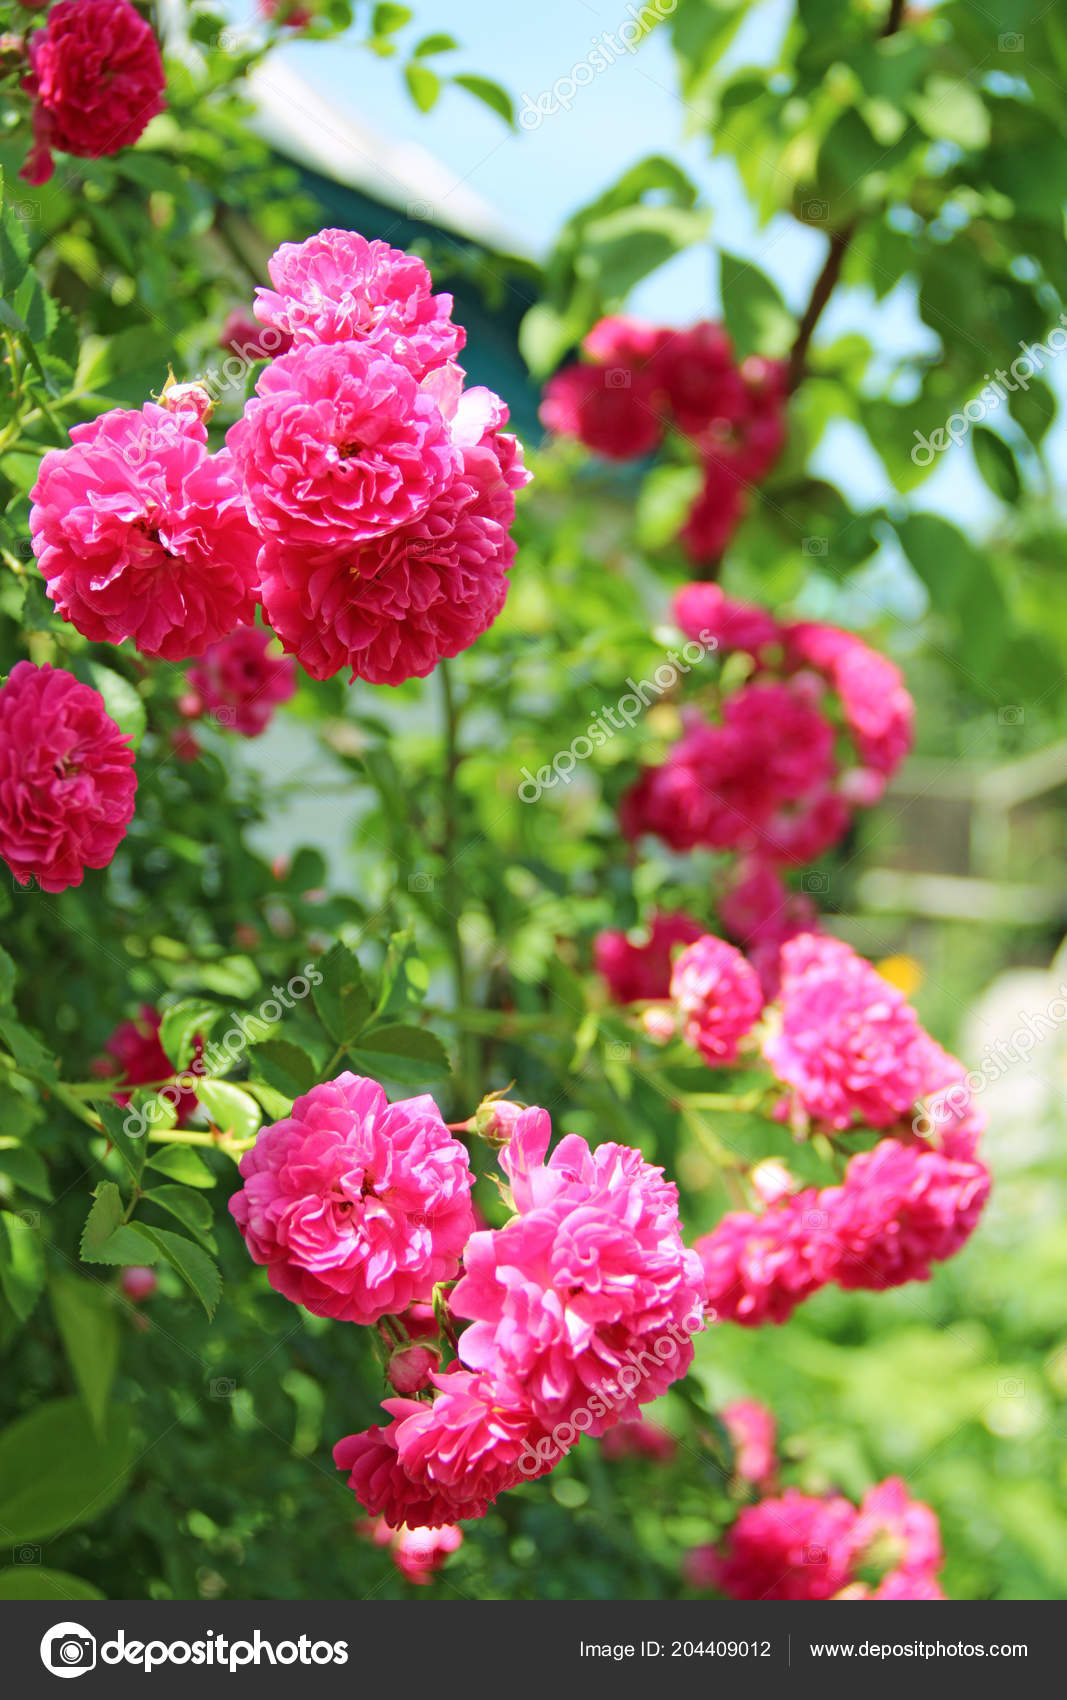 Red Flowers Climbing Rose Bloom Garden House Beautiful Roses Growing — Stock Photo